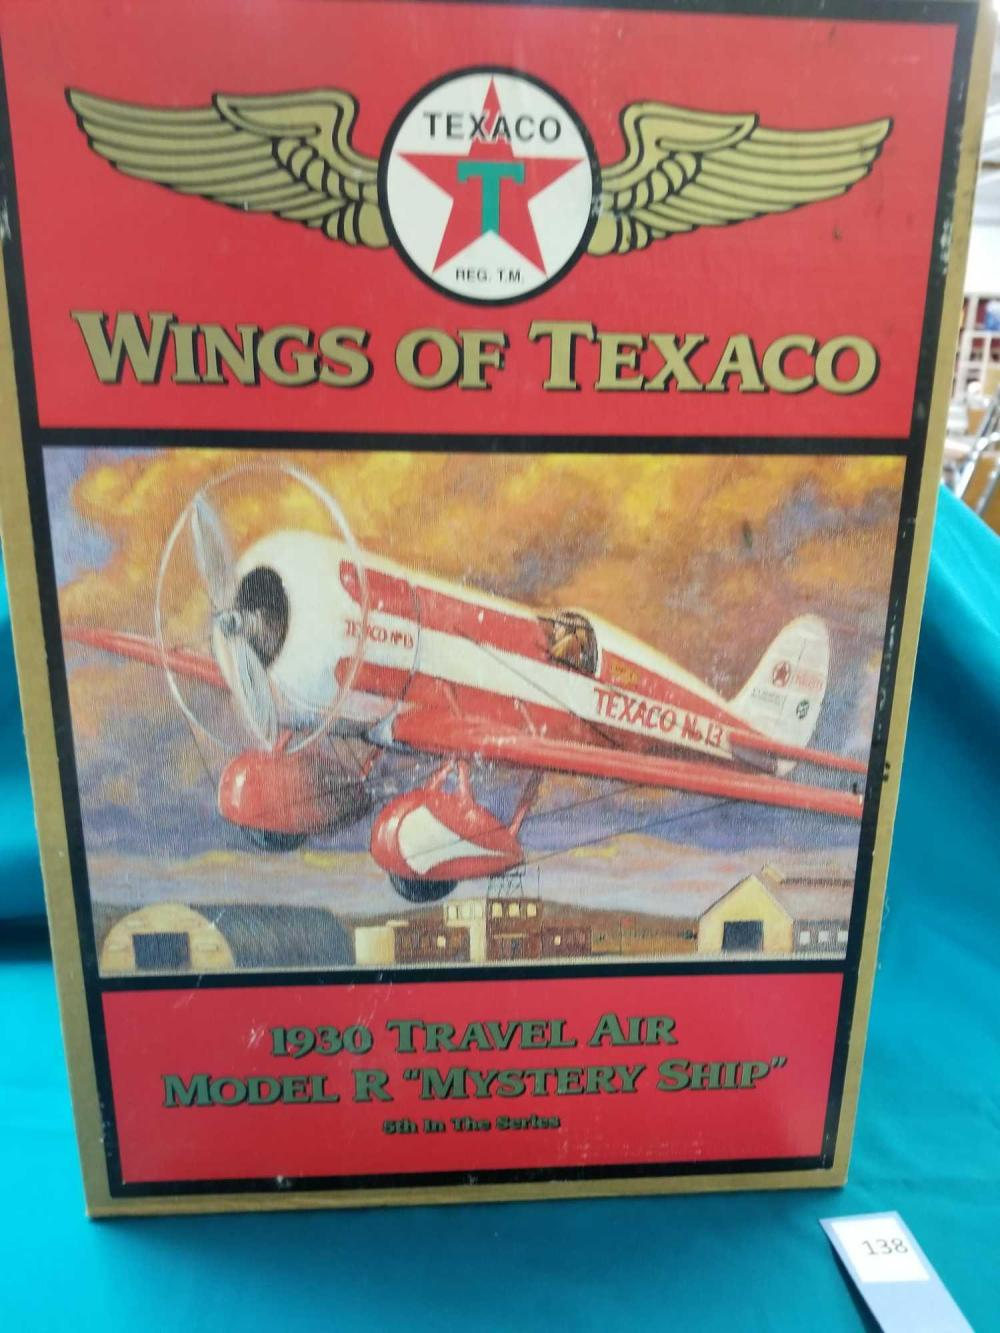 WINGS OF TEXACO 1930 TRAVEL AIR MODEL R (MYSTERY SHIP) DIE CAST AIRPLANE BANK BY ERTL IN THE BOX